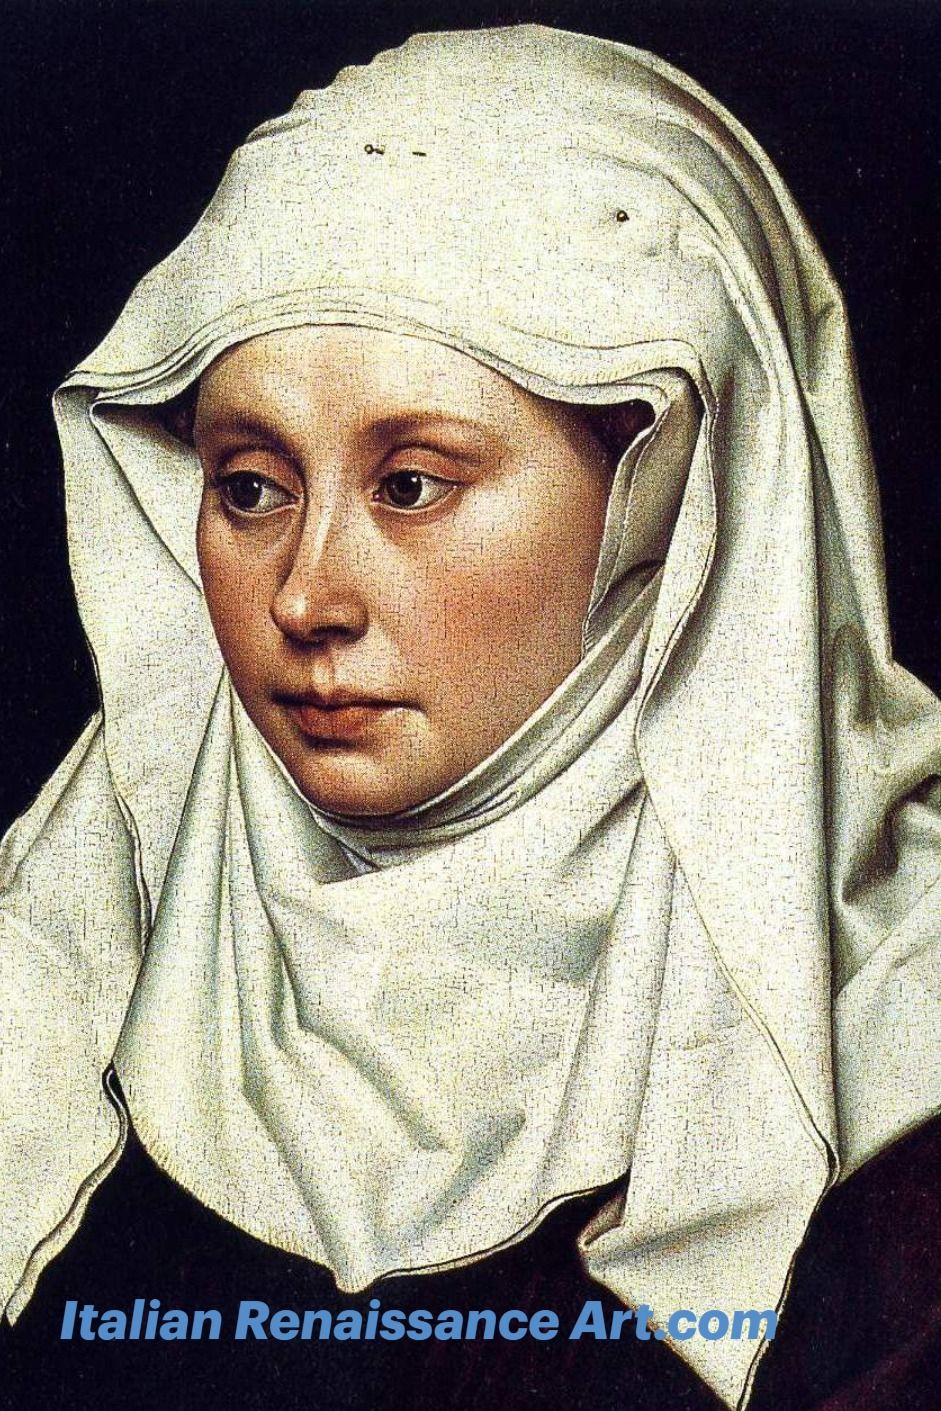 Robert Campin was one of the first Northern Renaissance